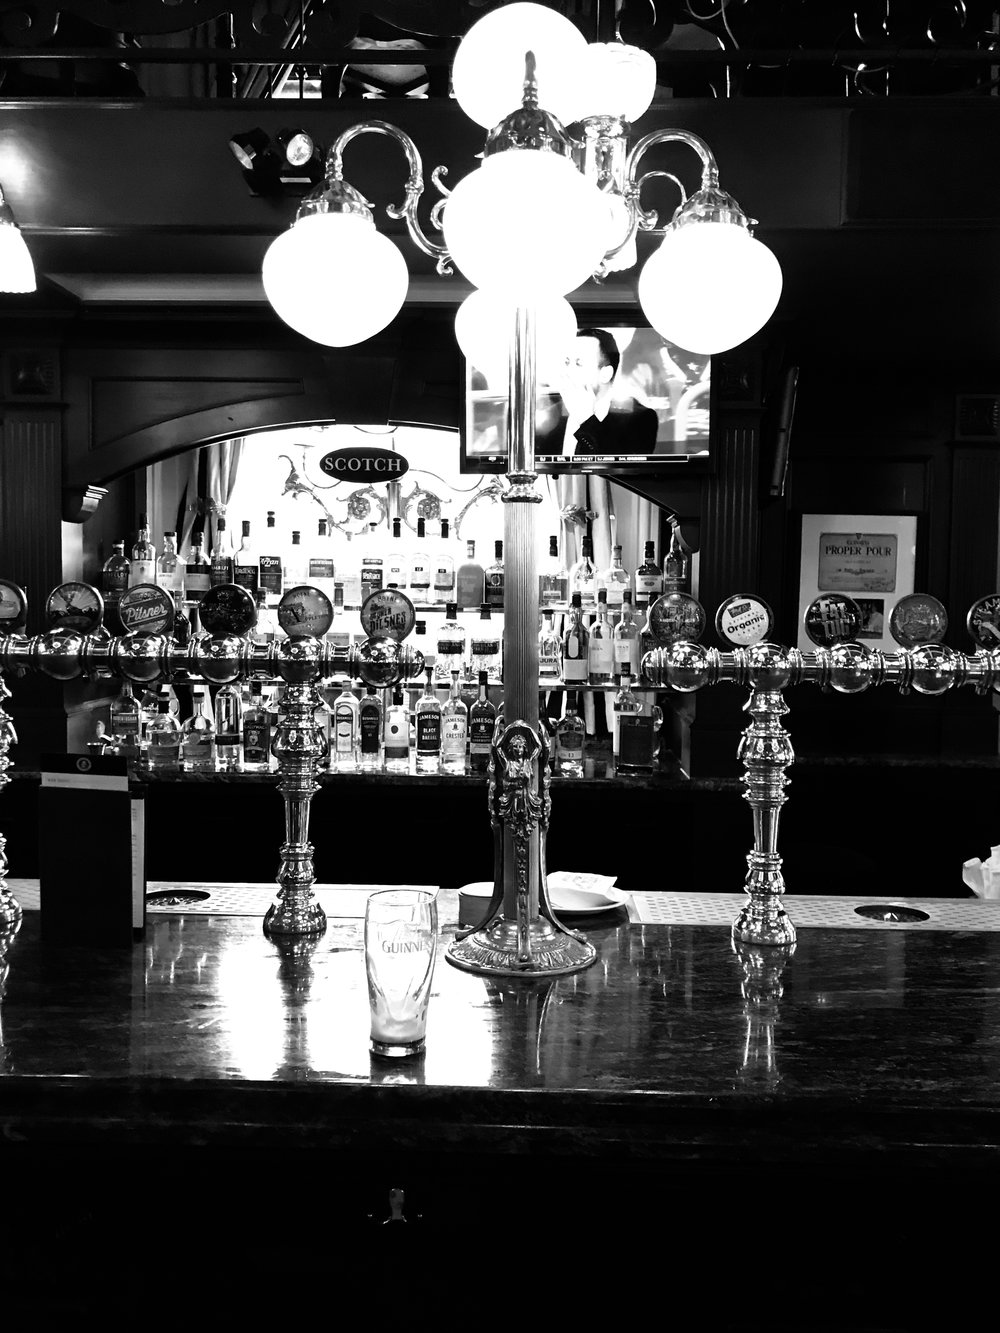 Beautiful pubs plus beautiful pints = beauty!